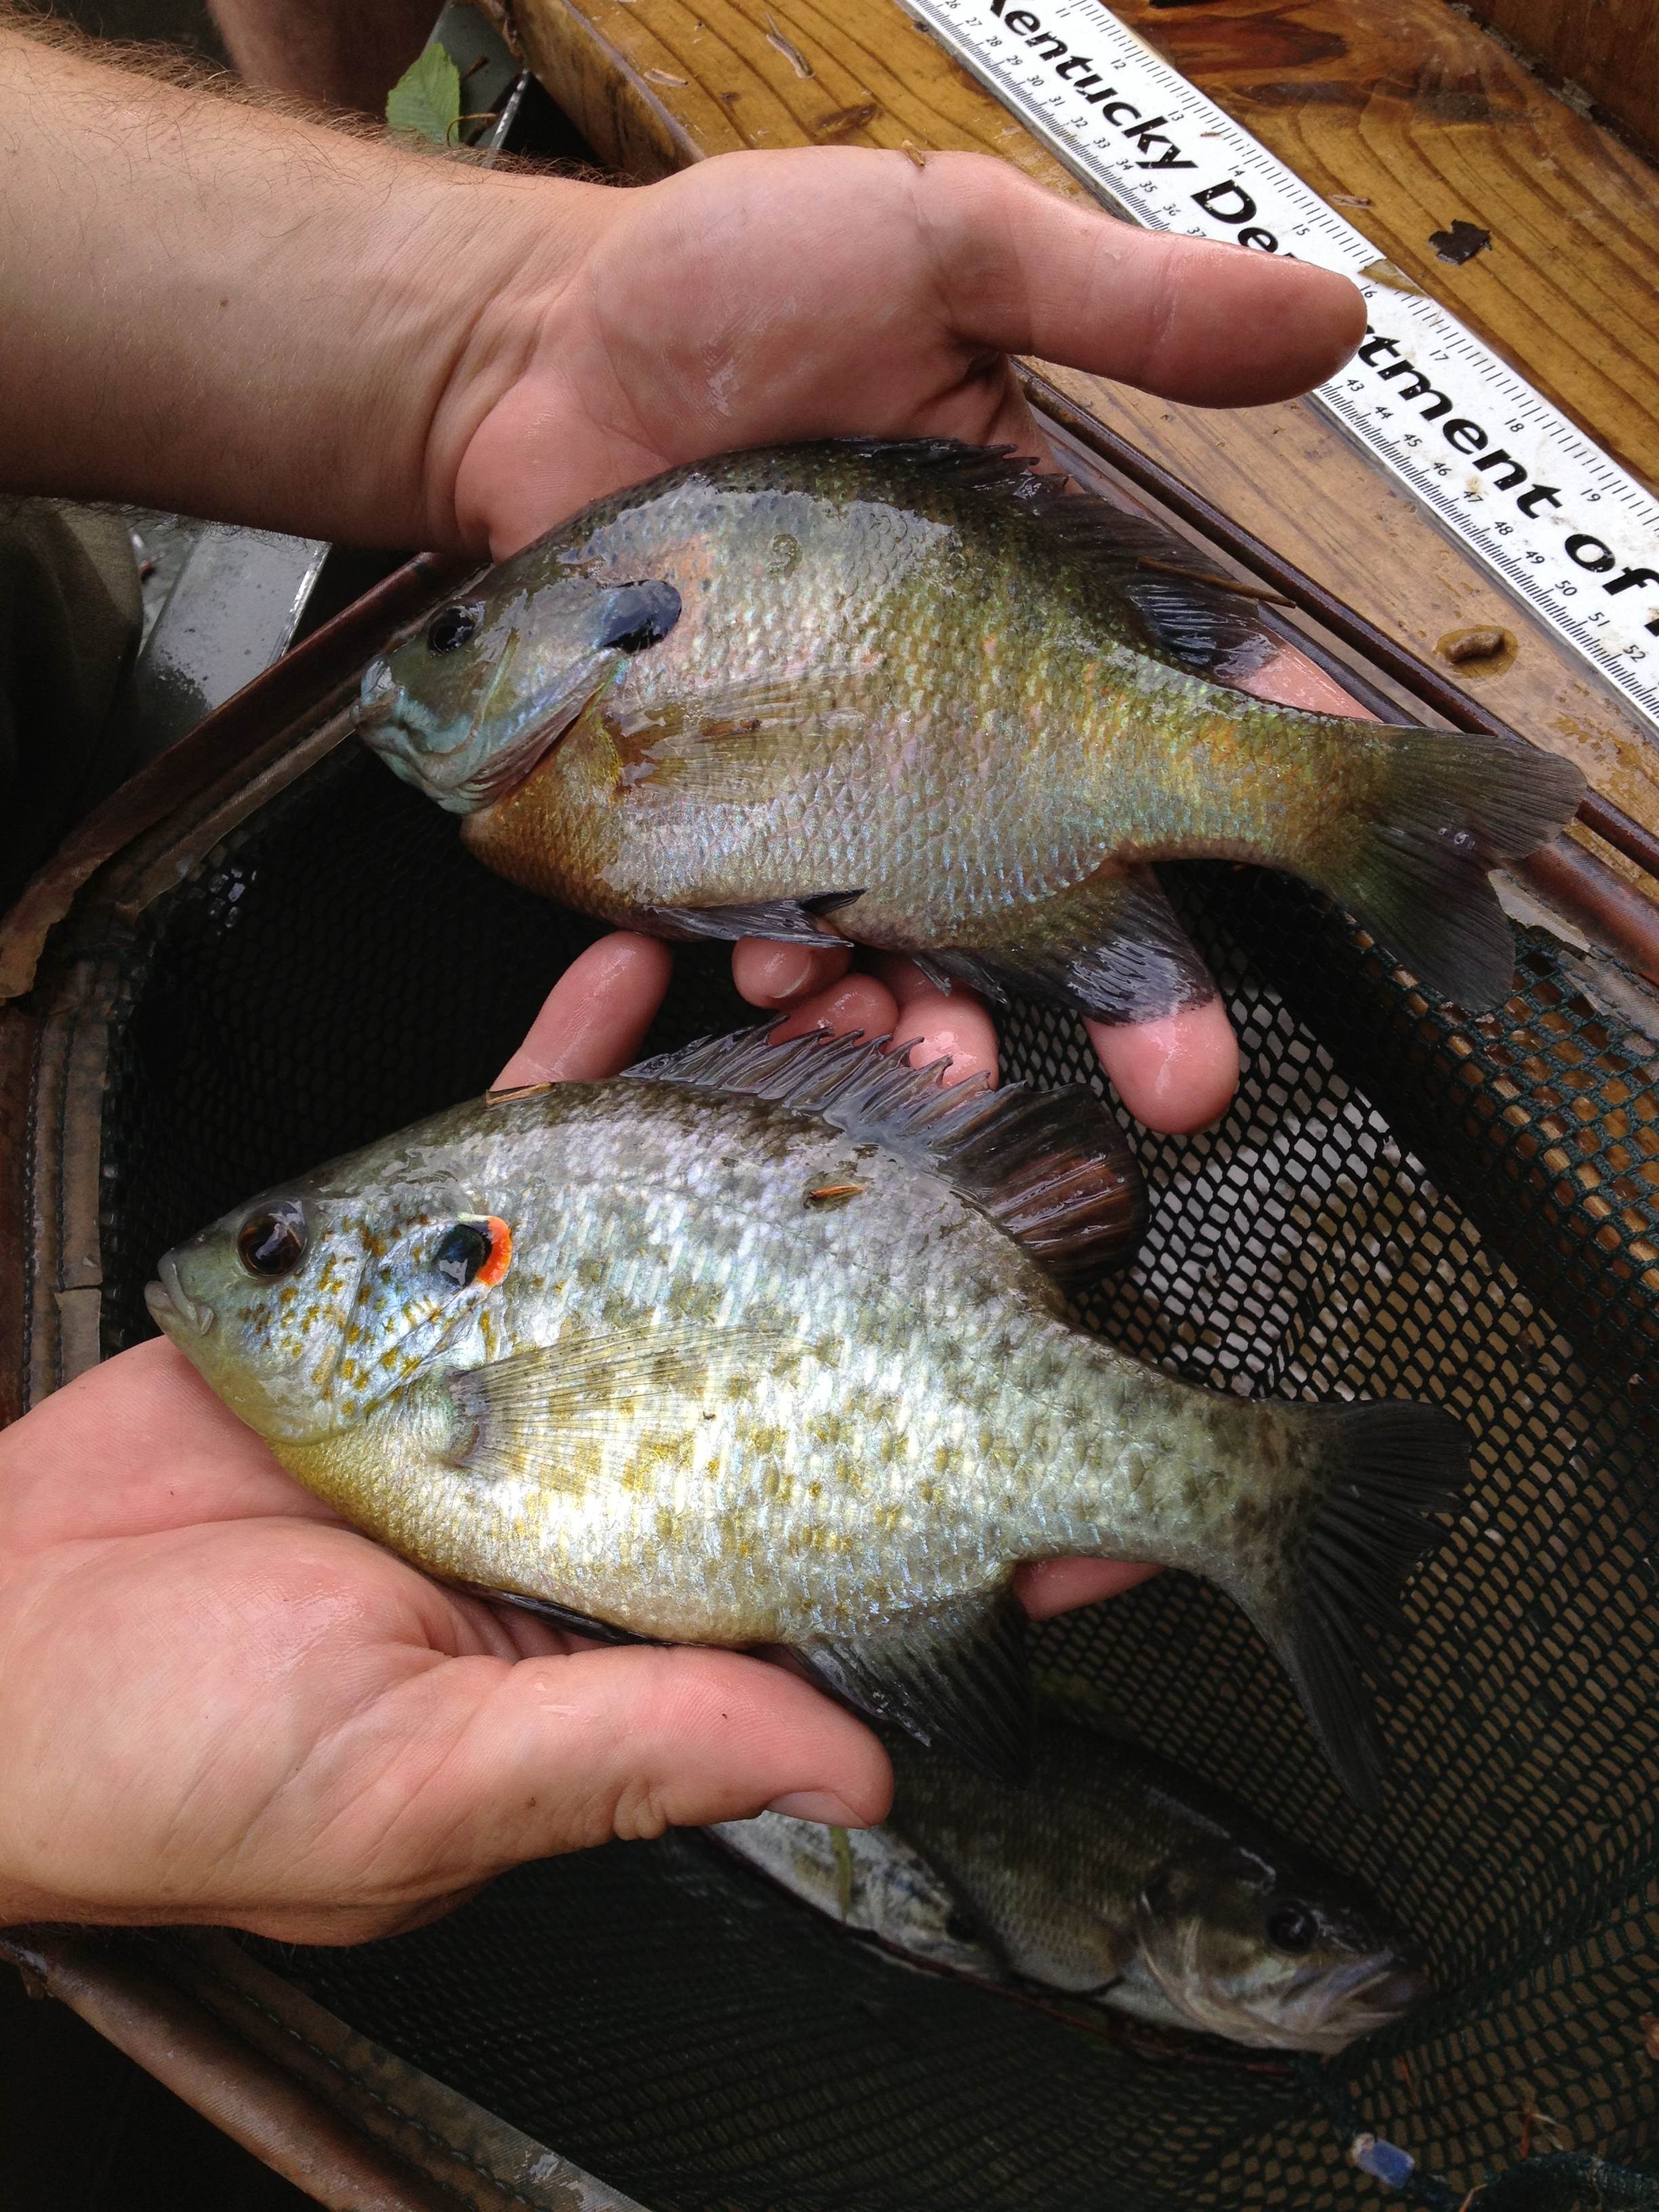 Green River provides anglers with a variety of species to target which including bluegill (top) and redear sunfish (bottom).